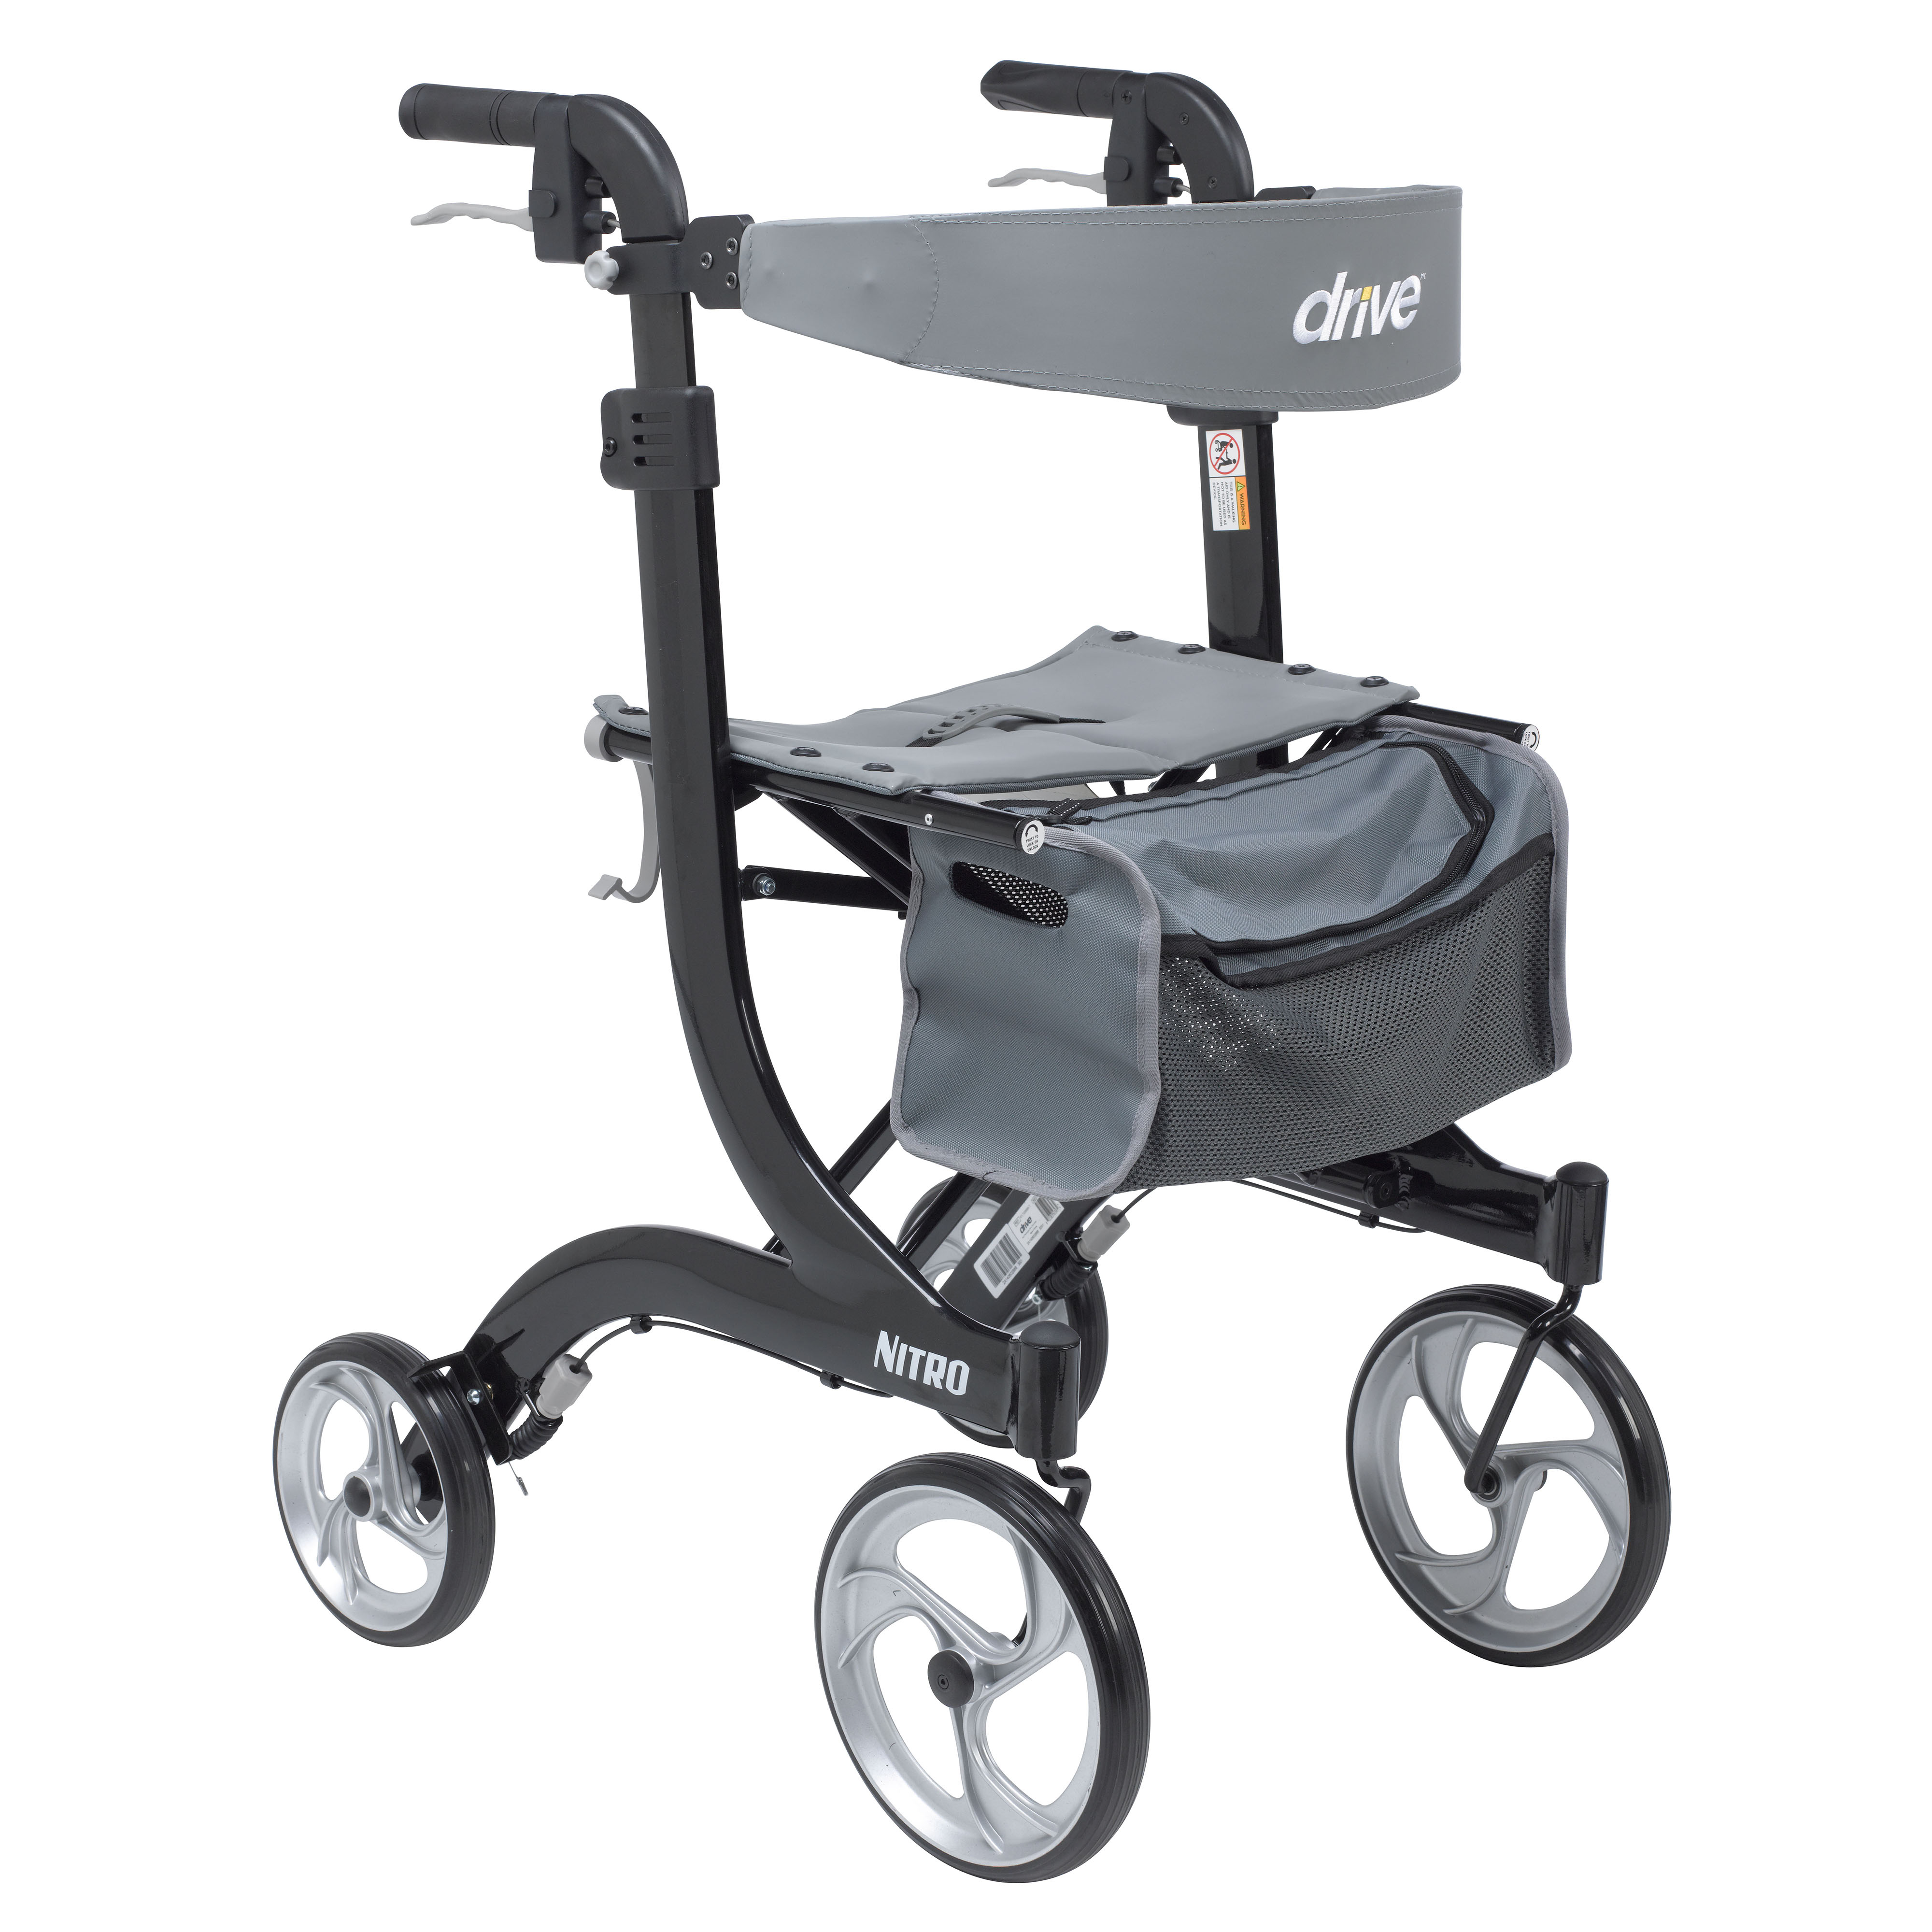 Drive Medical Nitro Euro Style Rollator Rolling Walker, Tall, Black